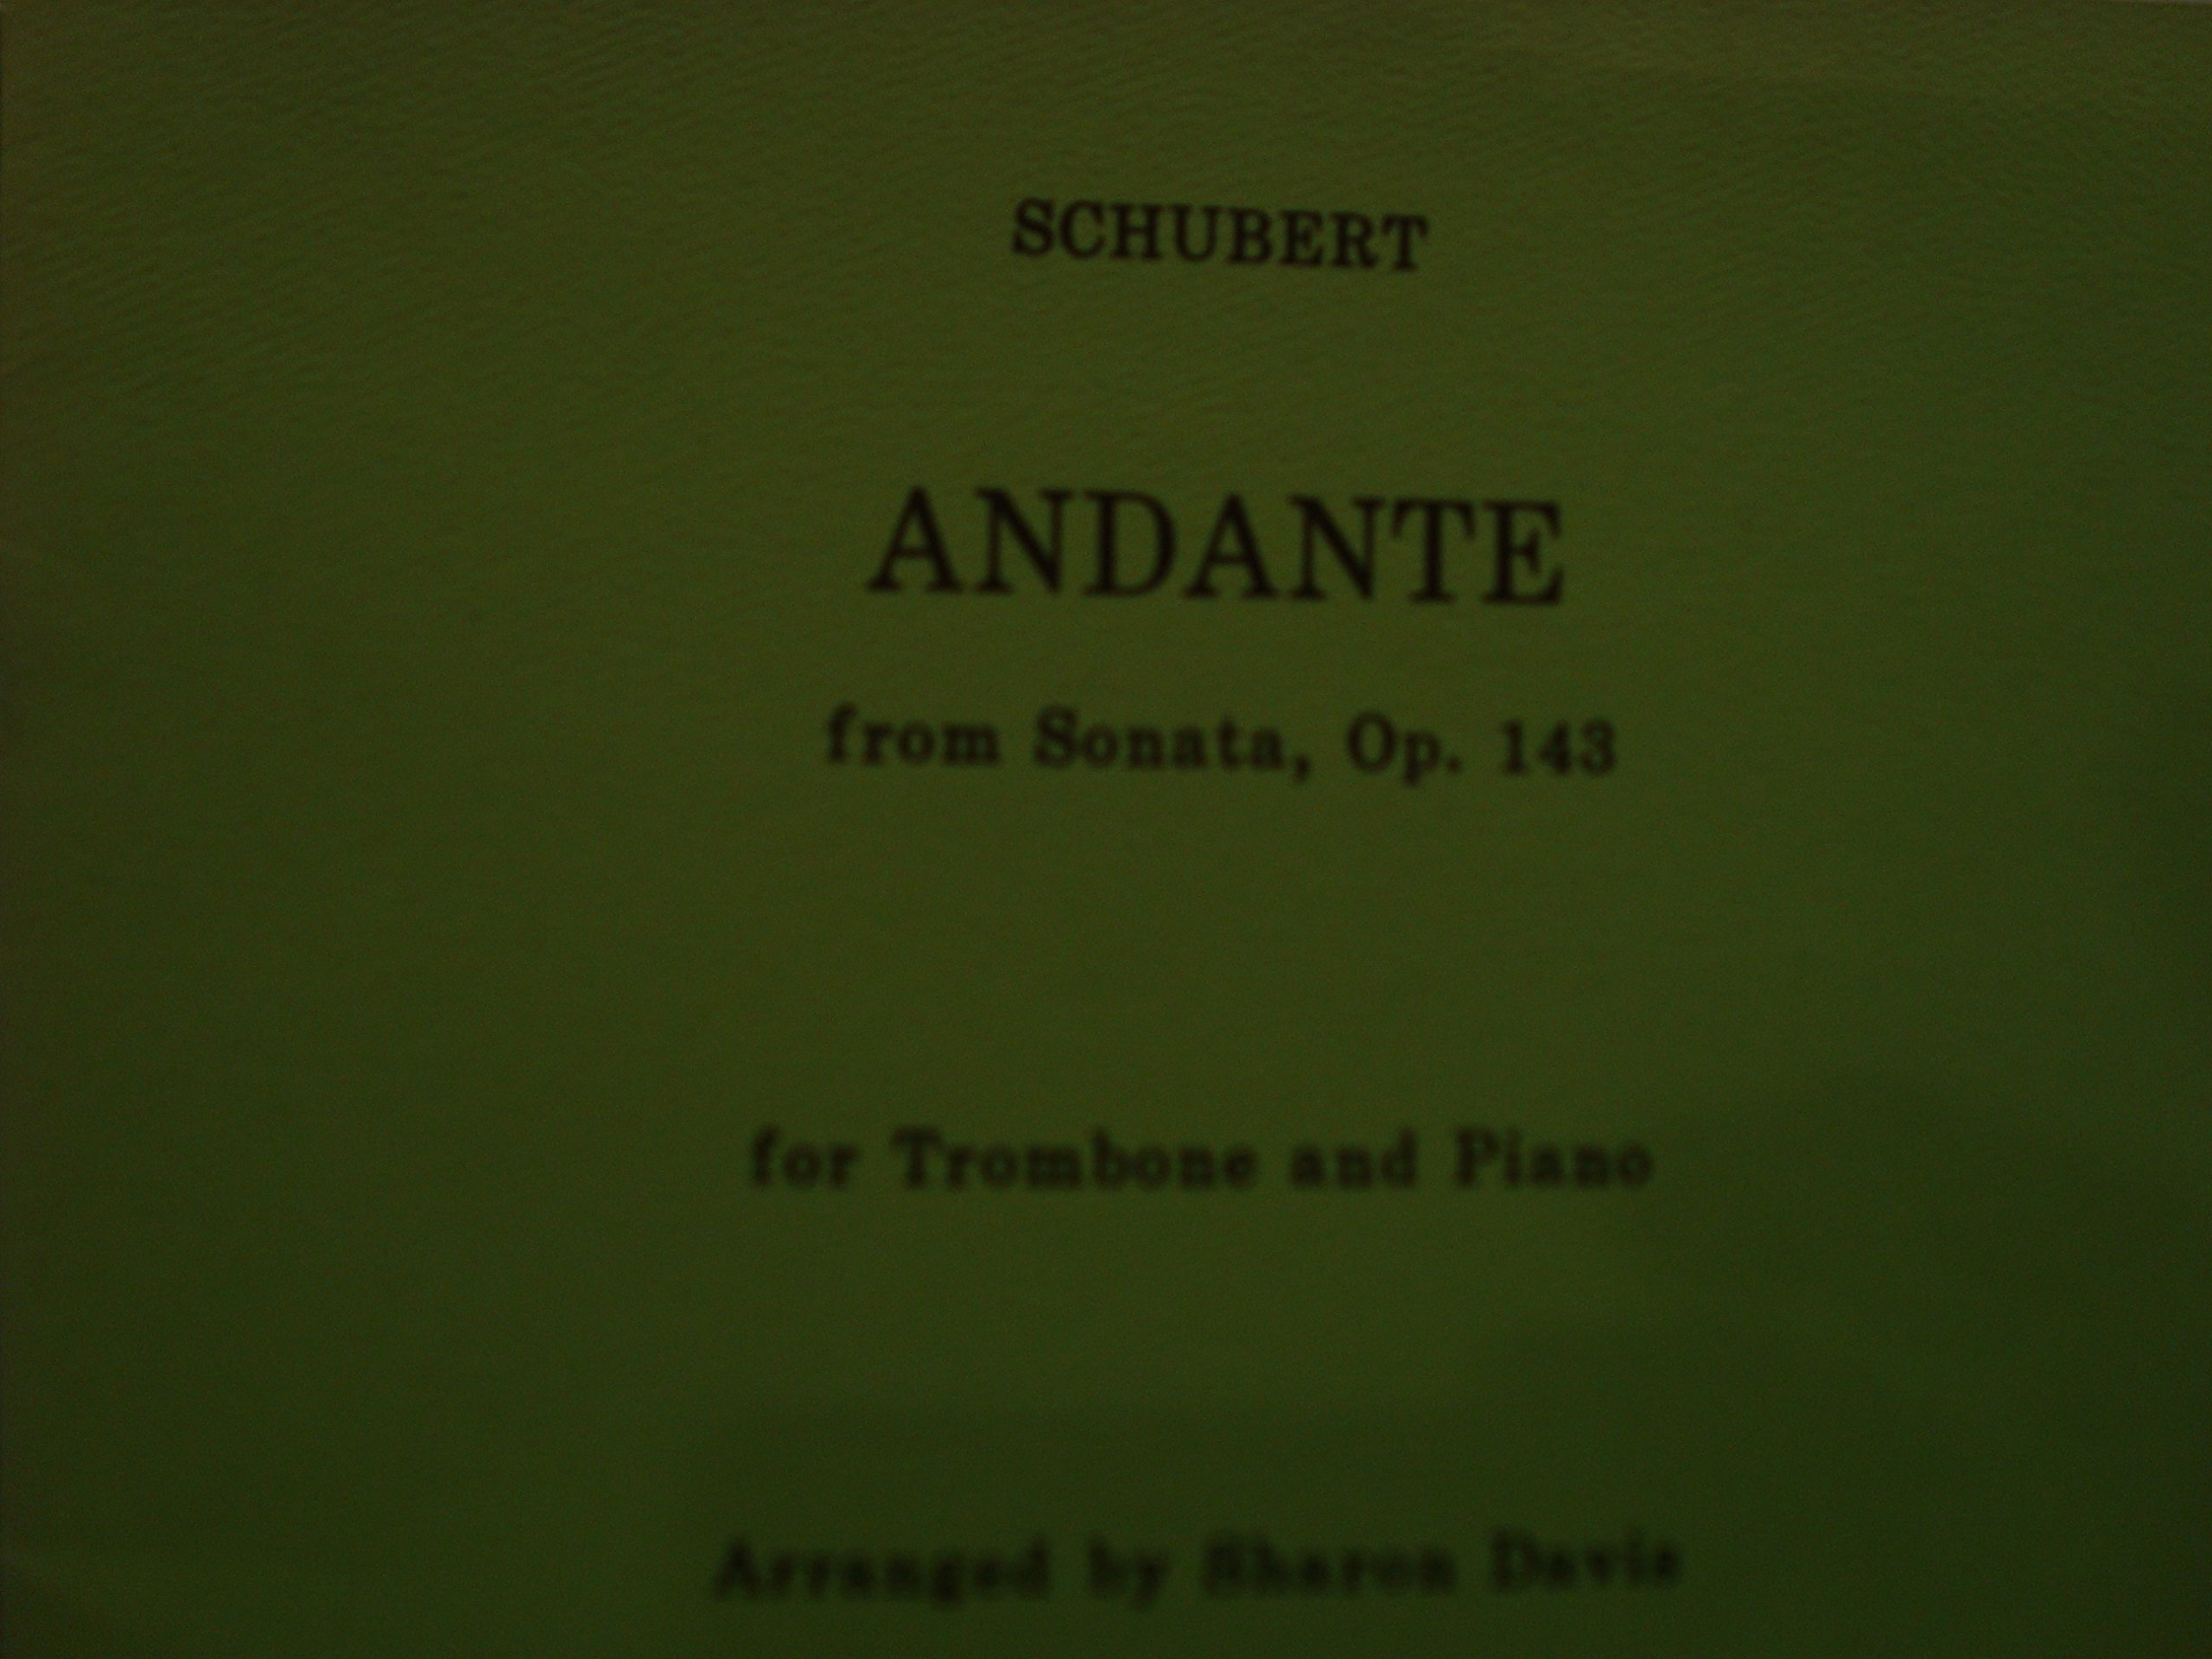 Andante From Sonata, Op.143 / Schubert / for Trombone and Piano